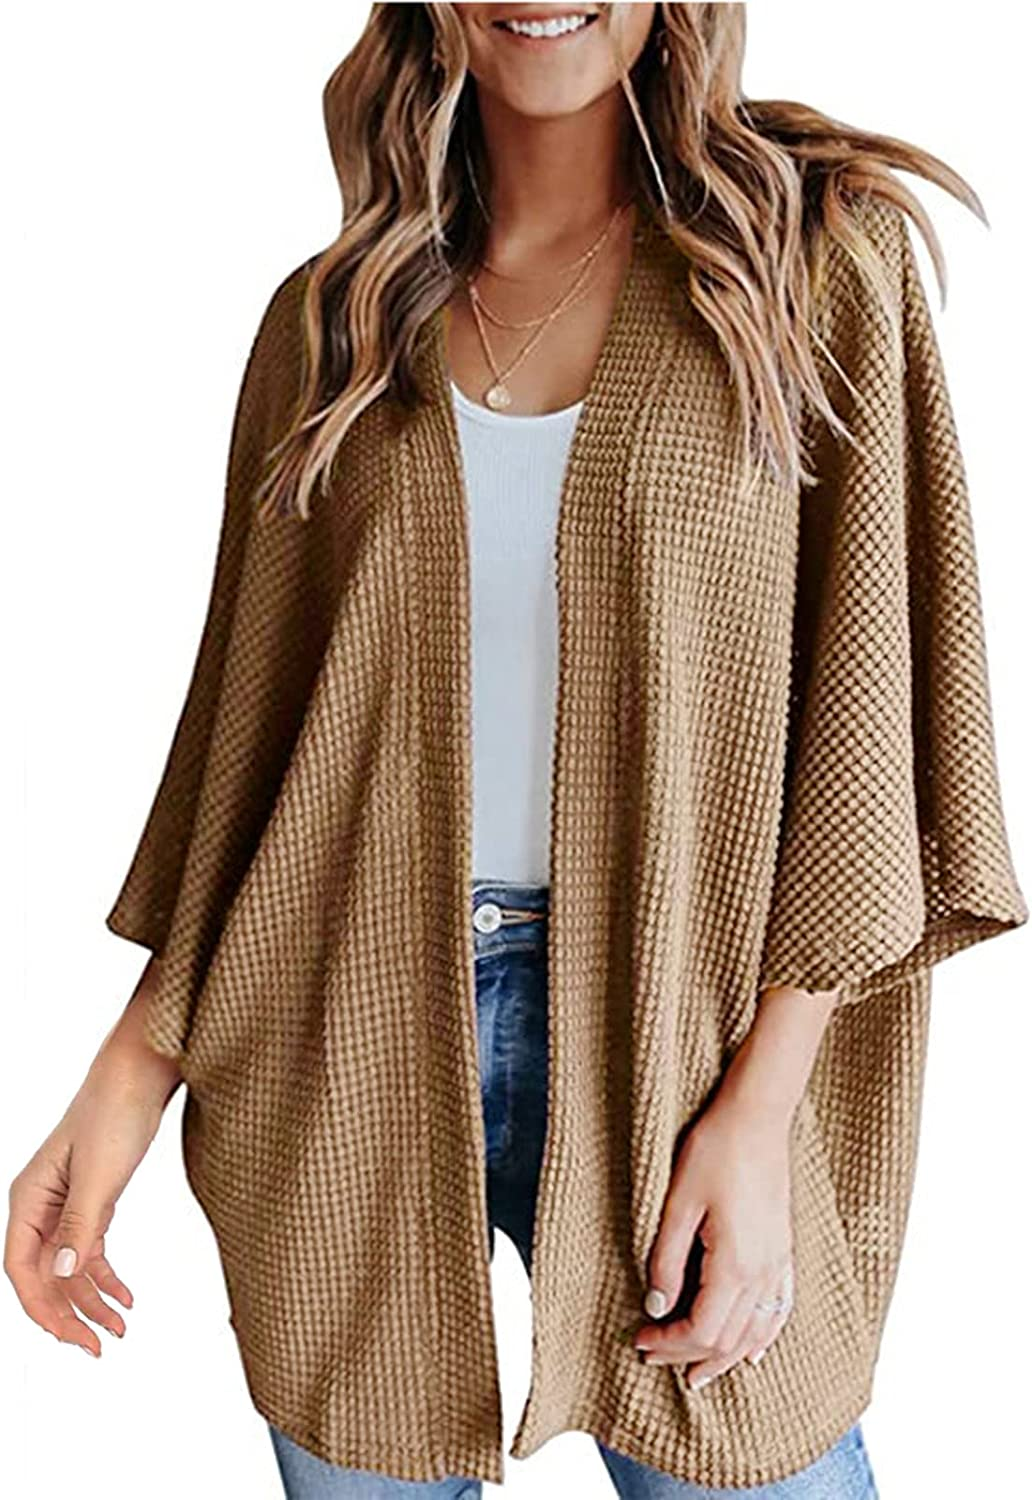 Women's Kimono Batwing Cable Knitted Slouchy Oversized Wrap Cardigan Sweater